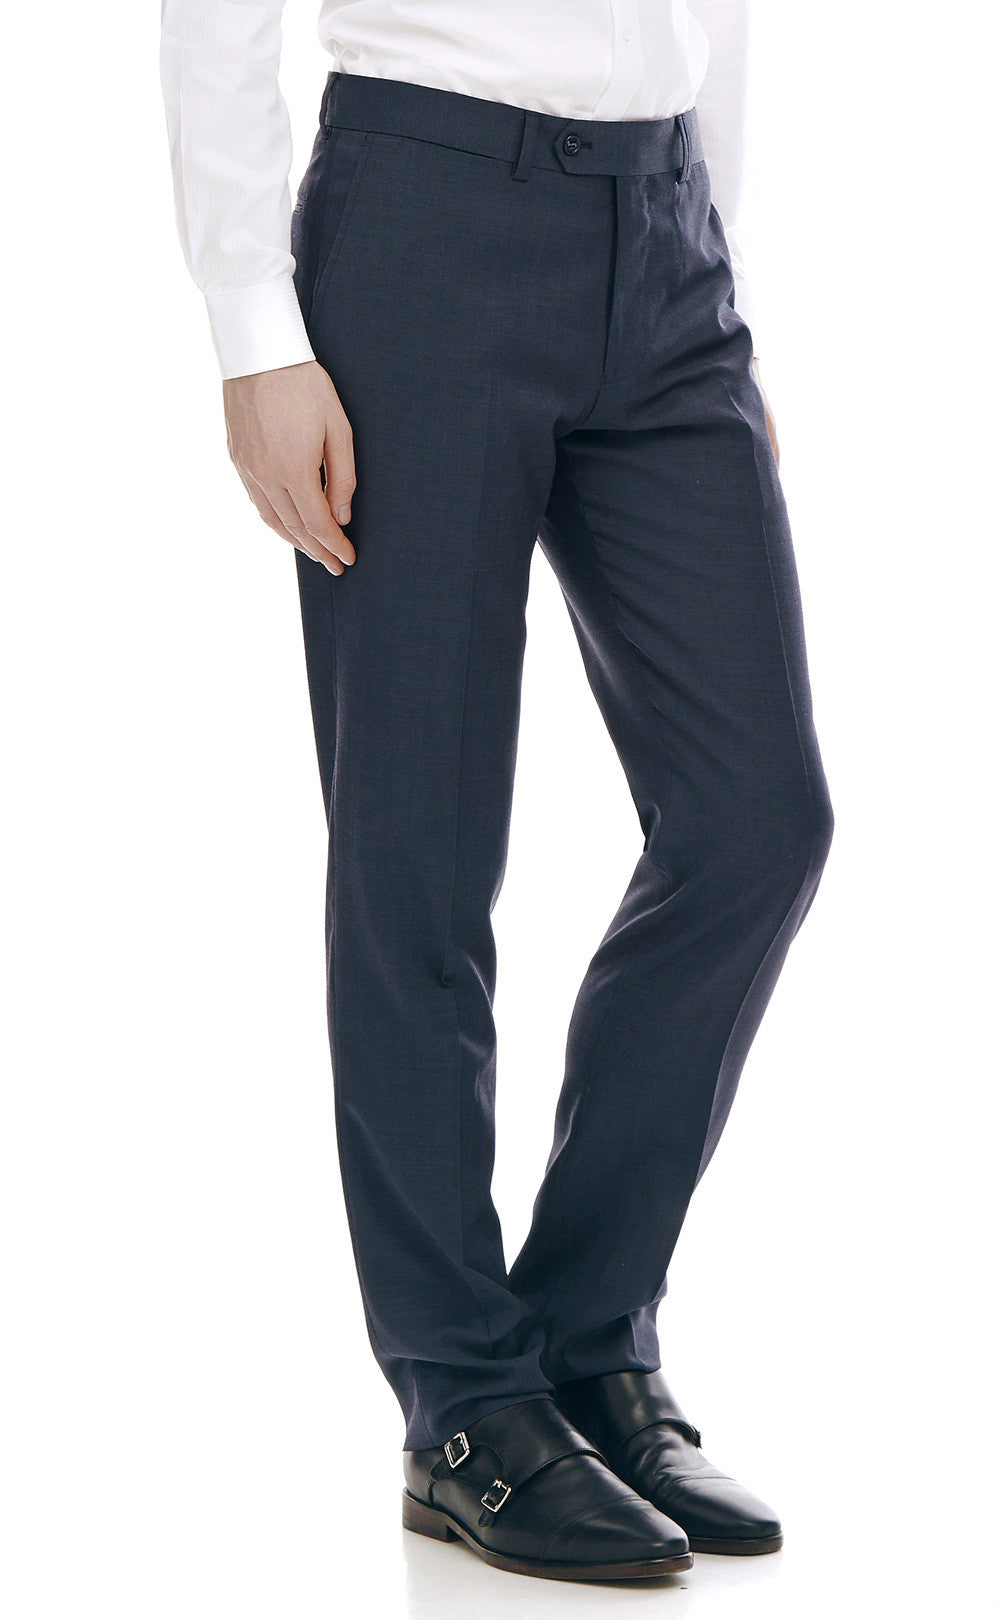 Maurice Navy Slim Fit Wool Suit Trousers - front zoomed.